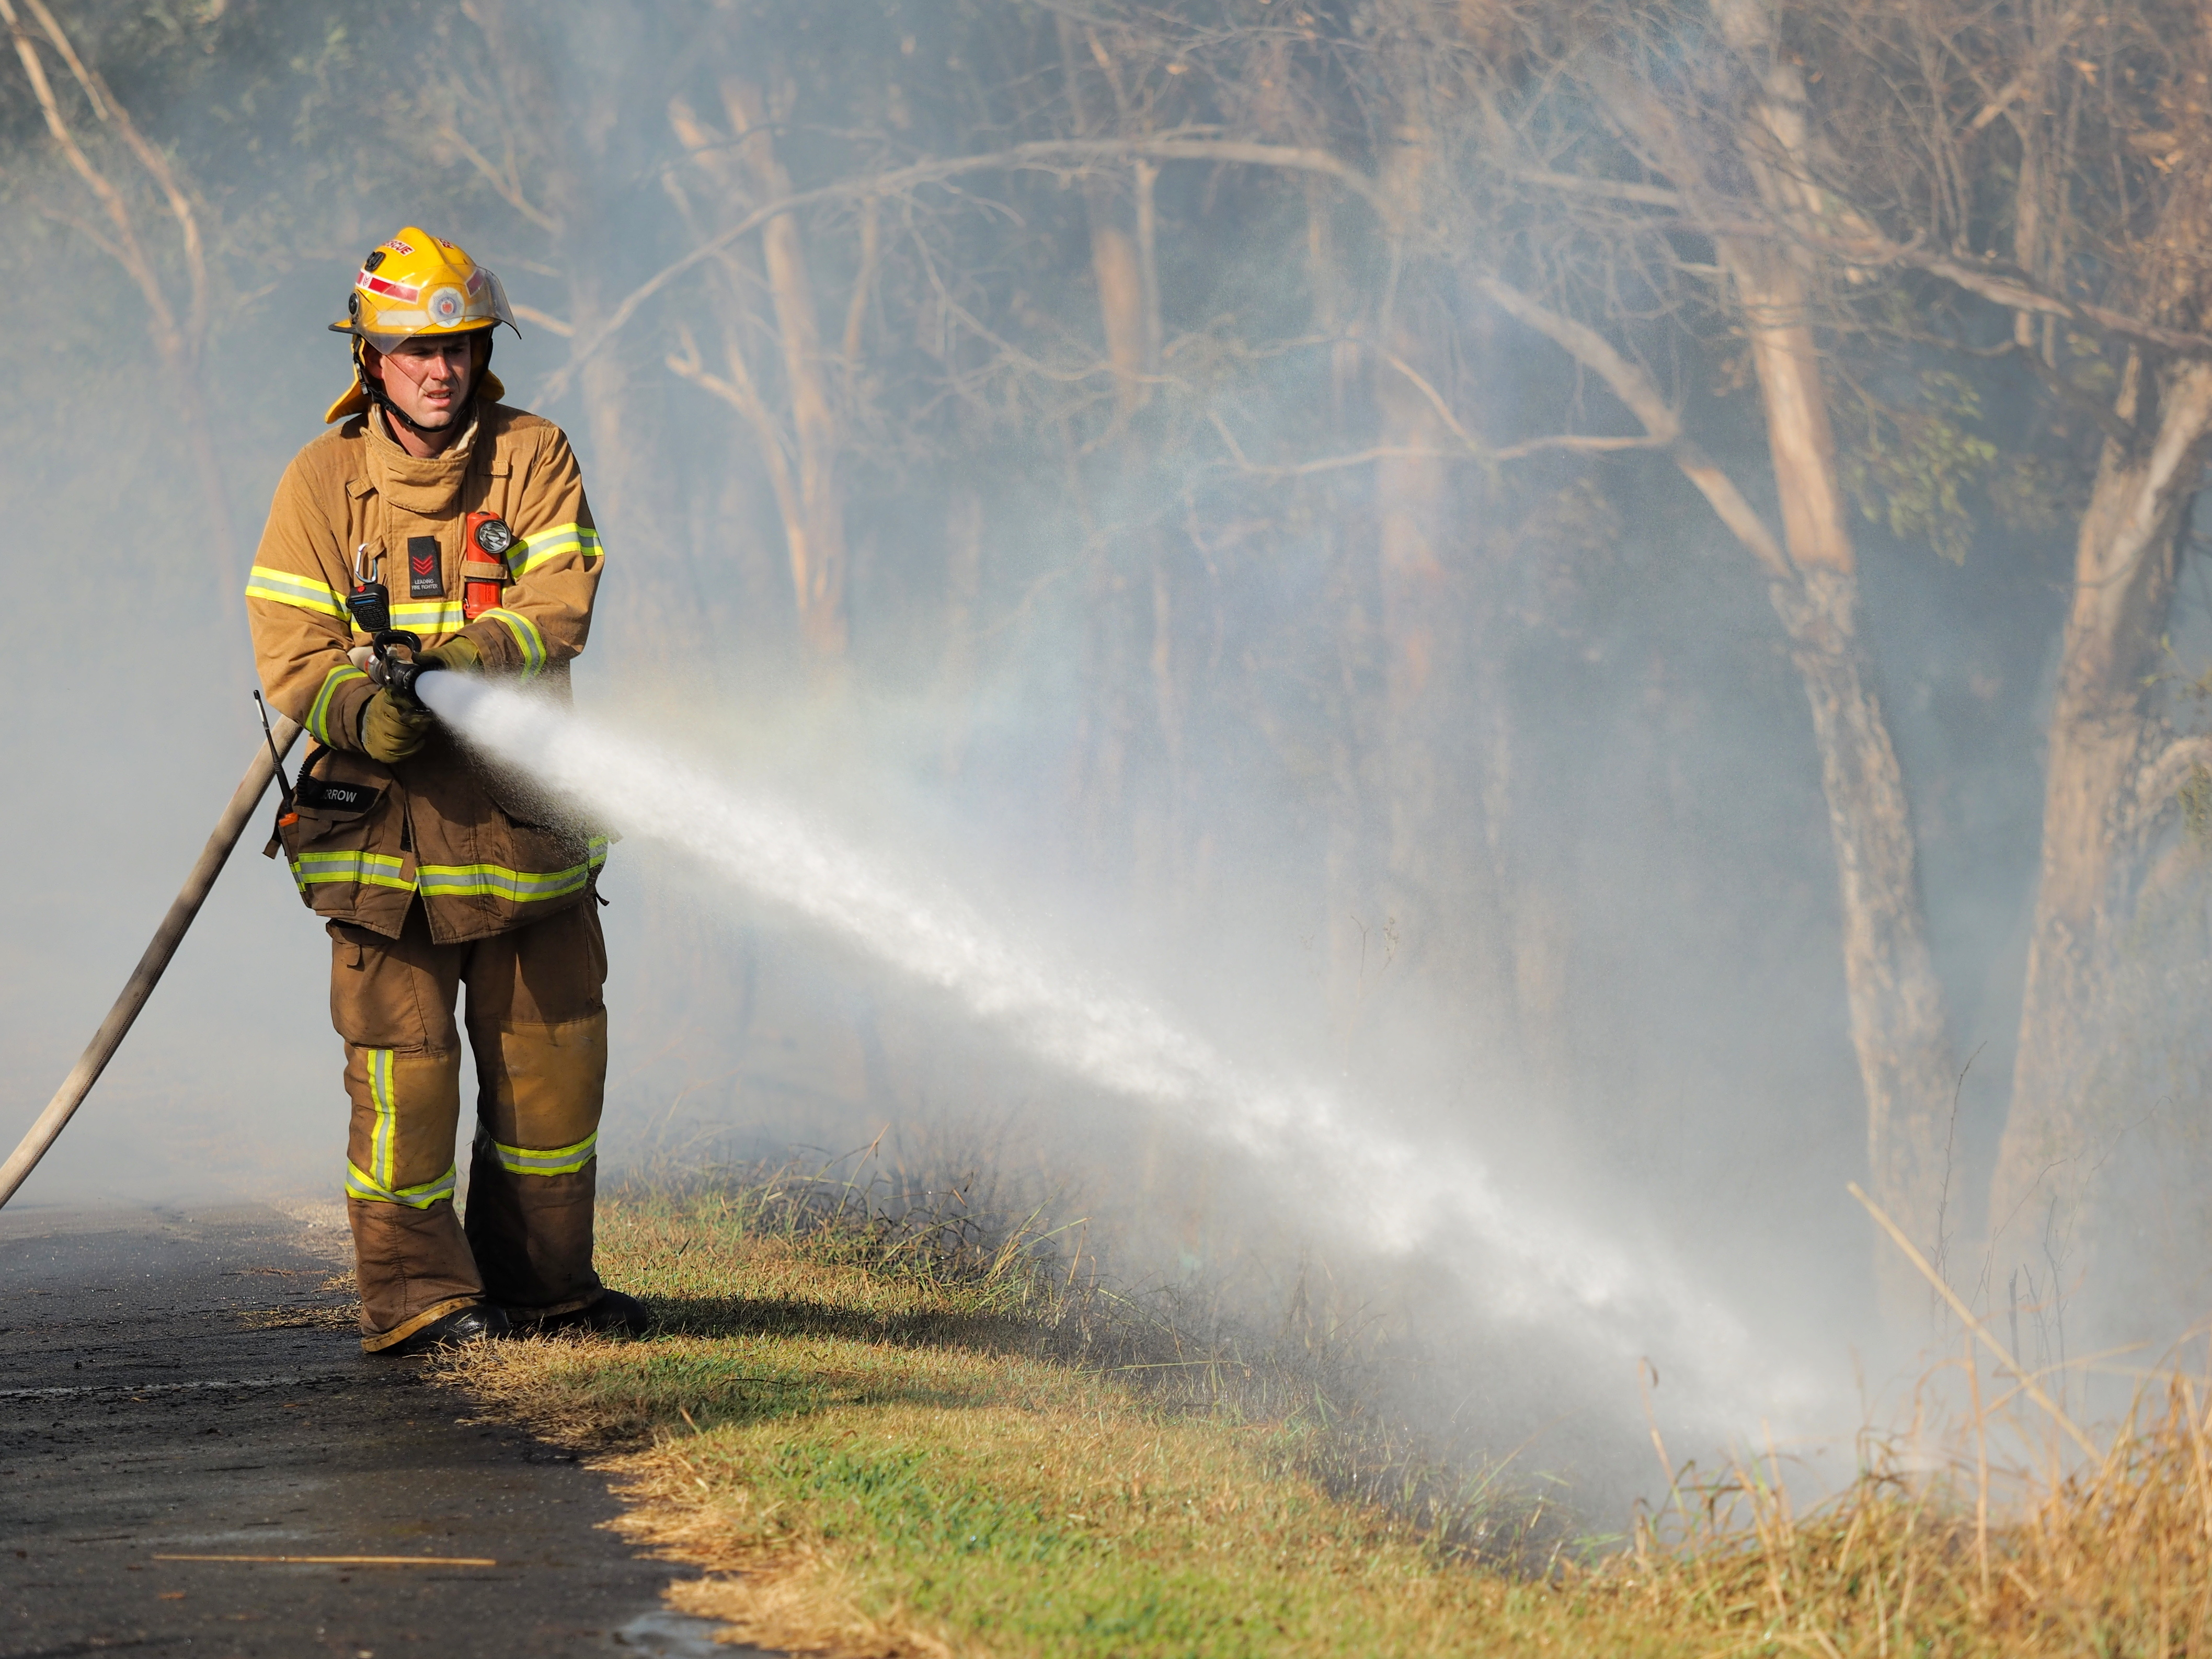 Fireman fighting fire with hose